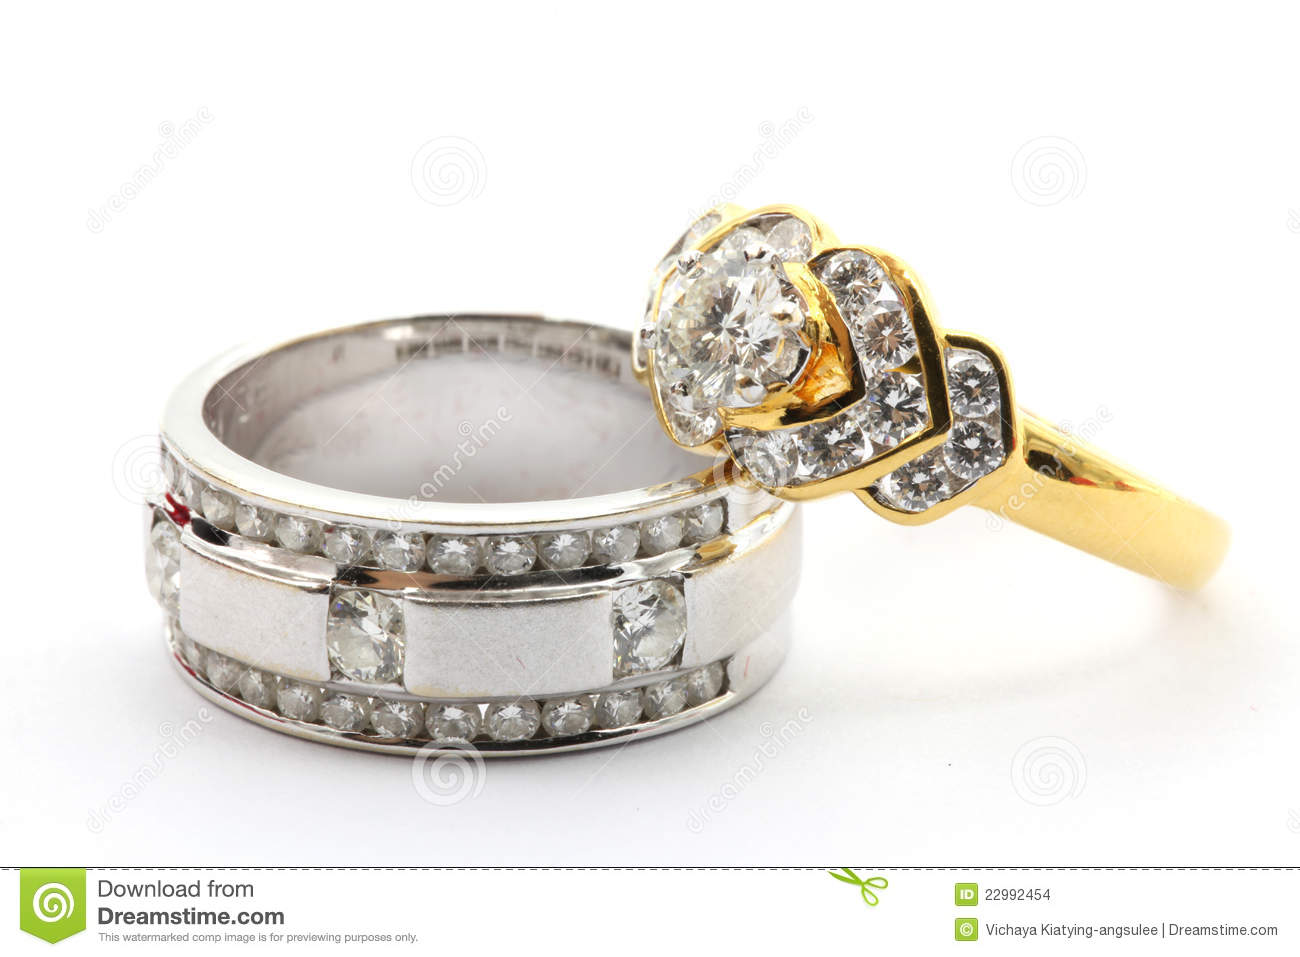 Paar-Diamant-Ring